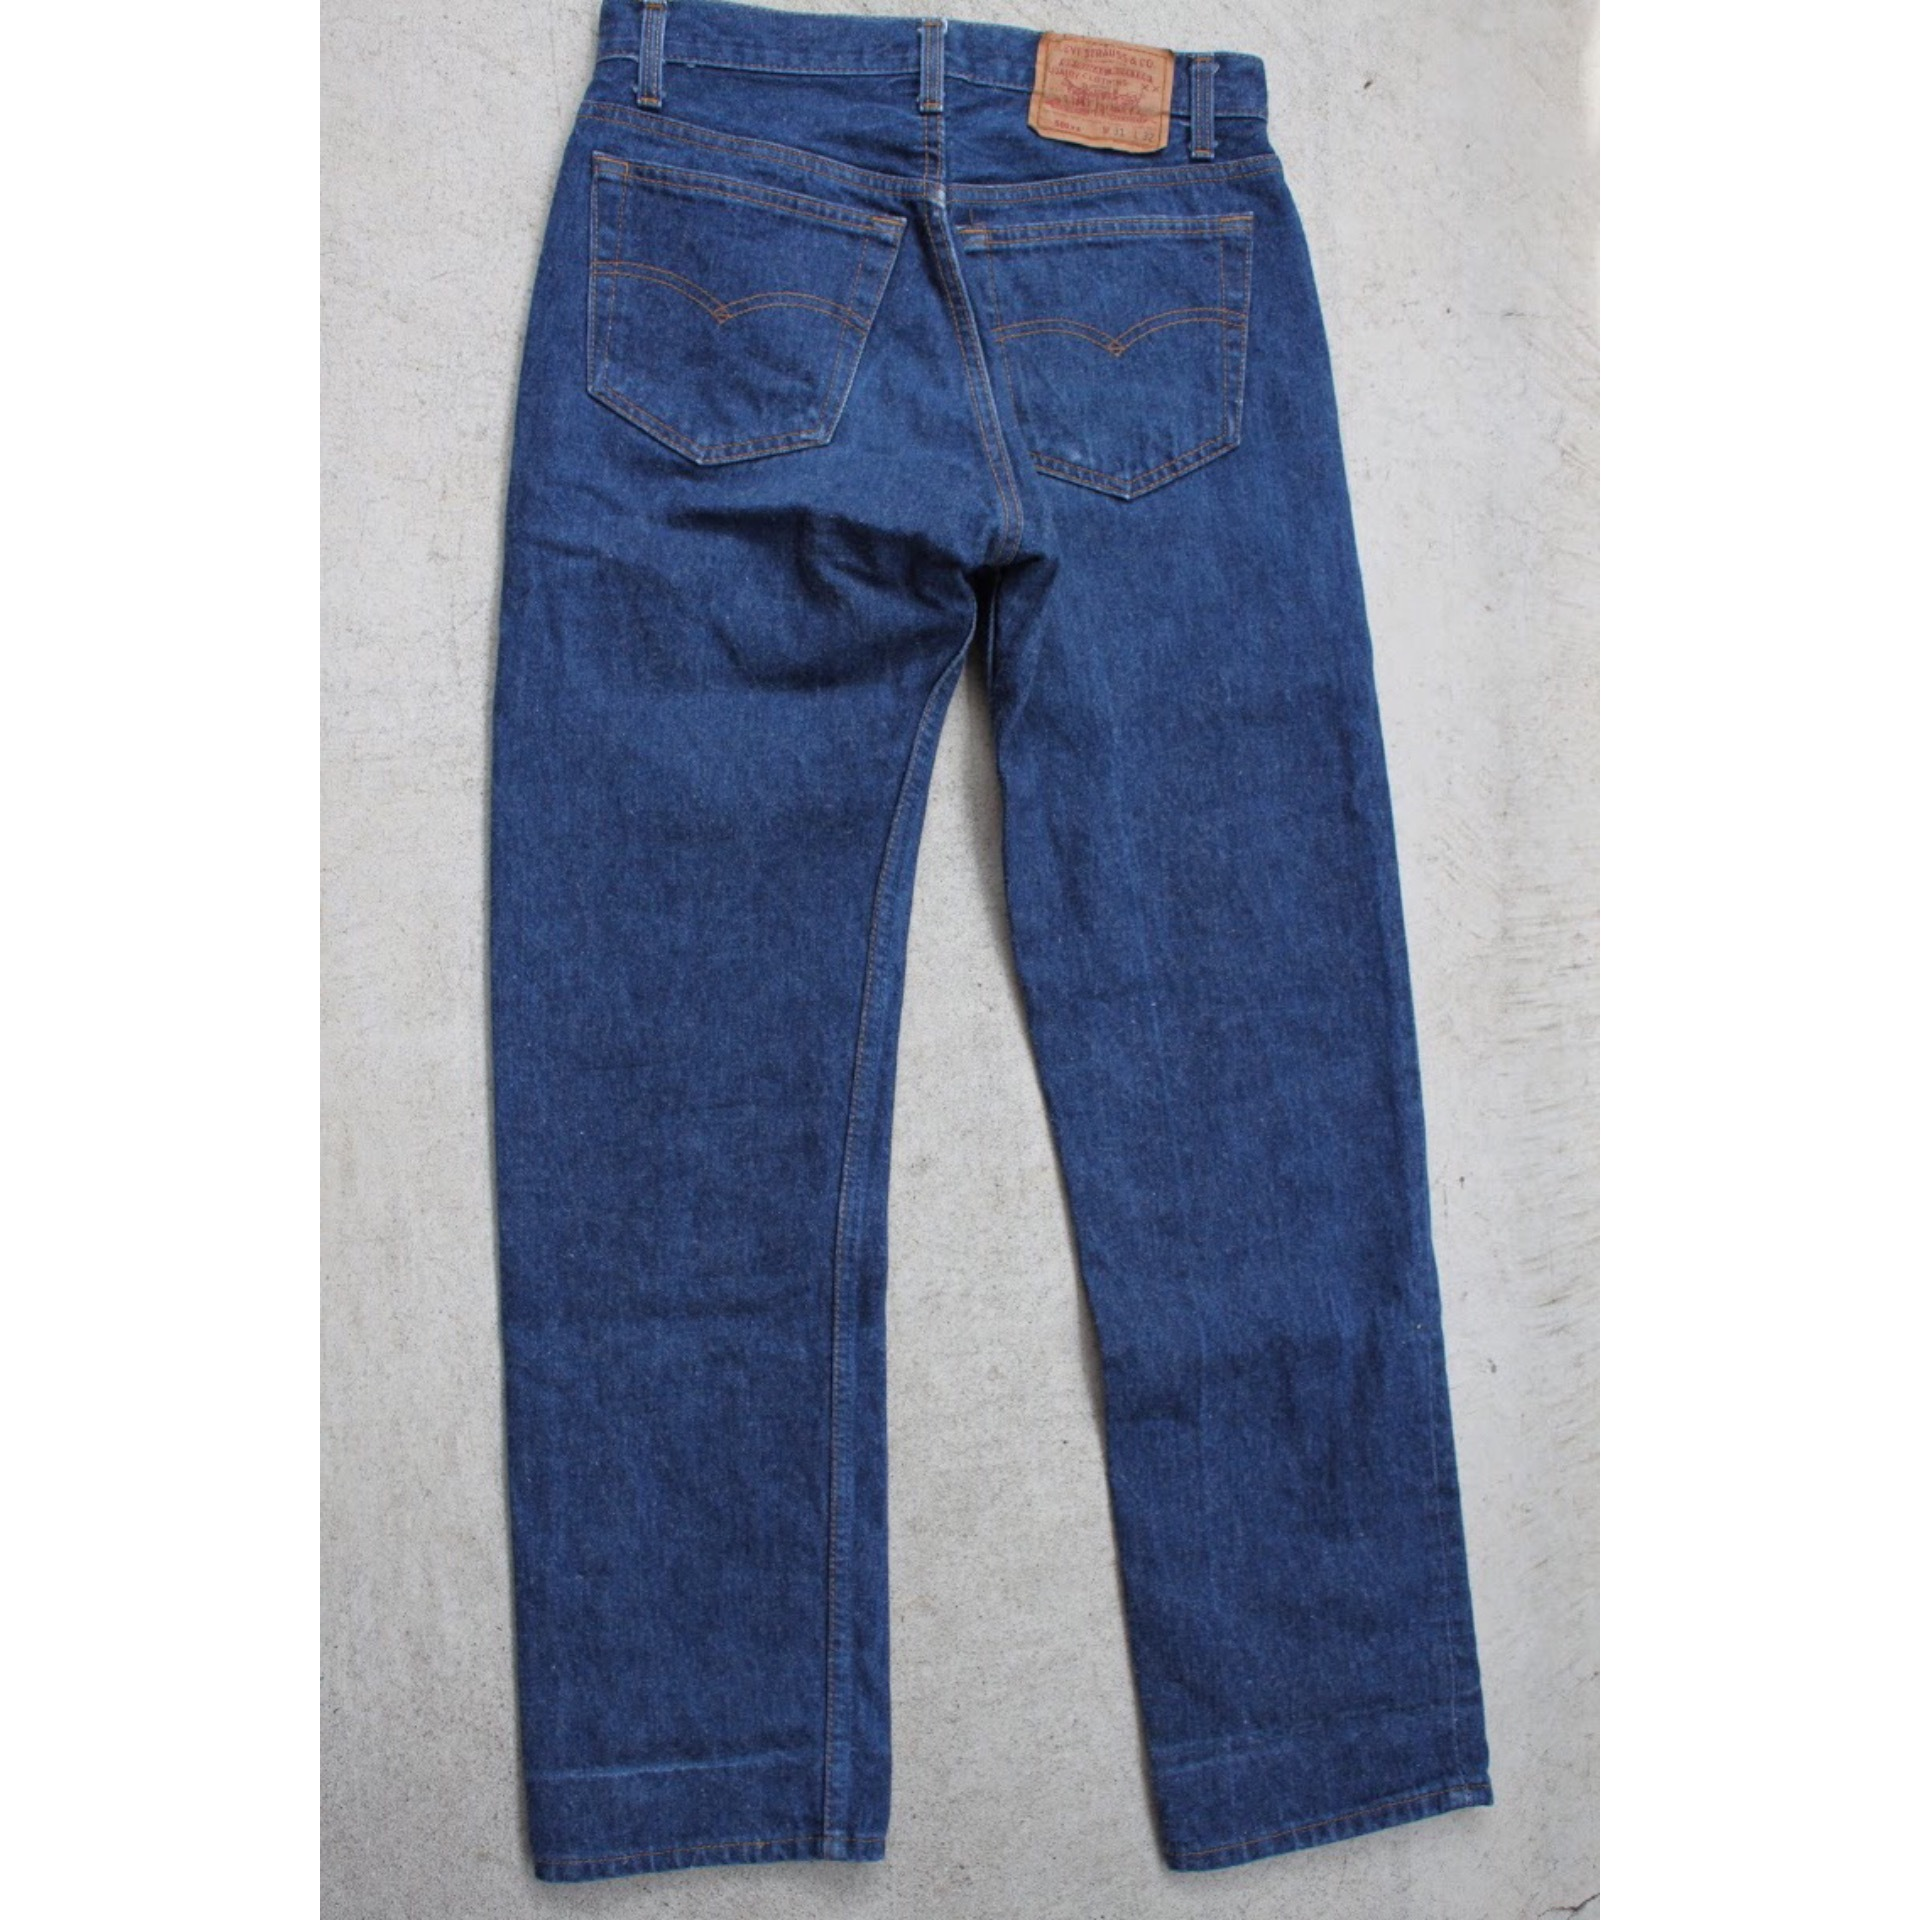 Vintage Levis 501 denim pants